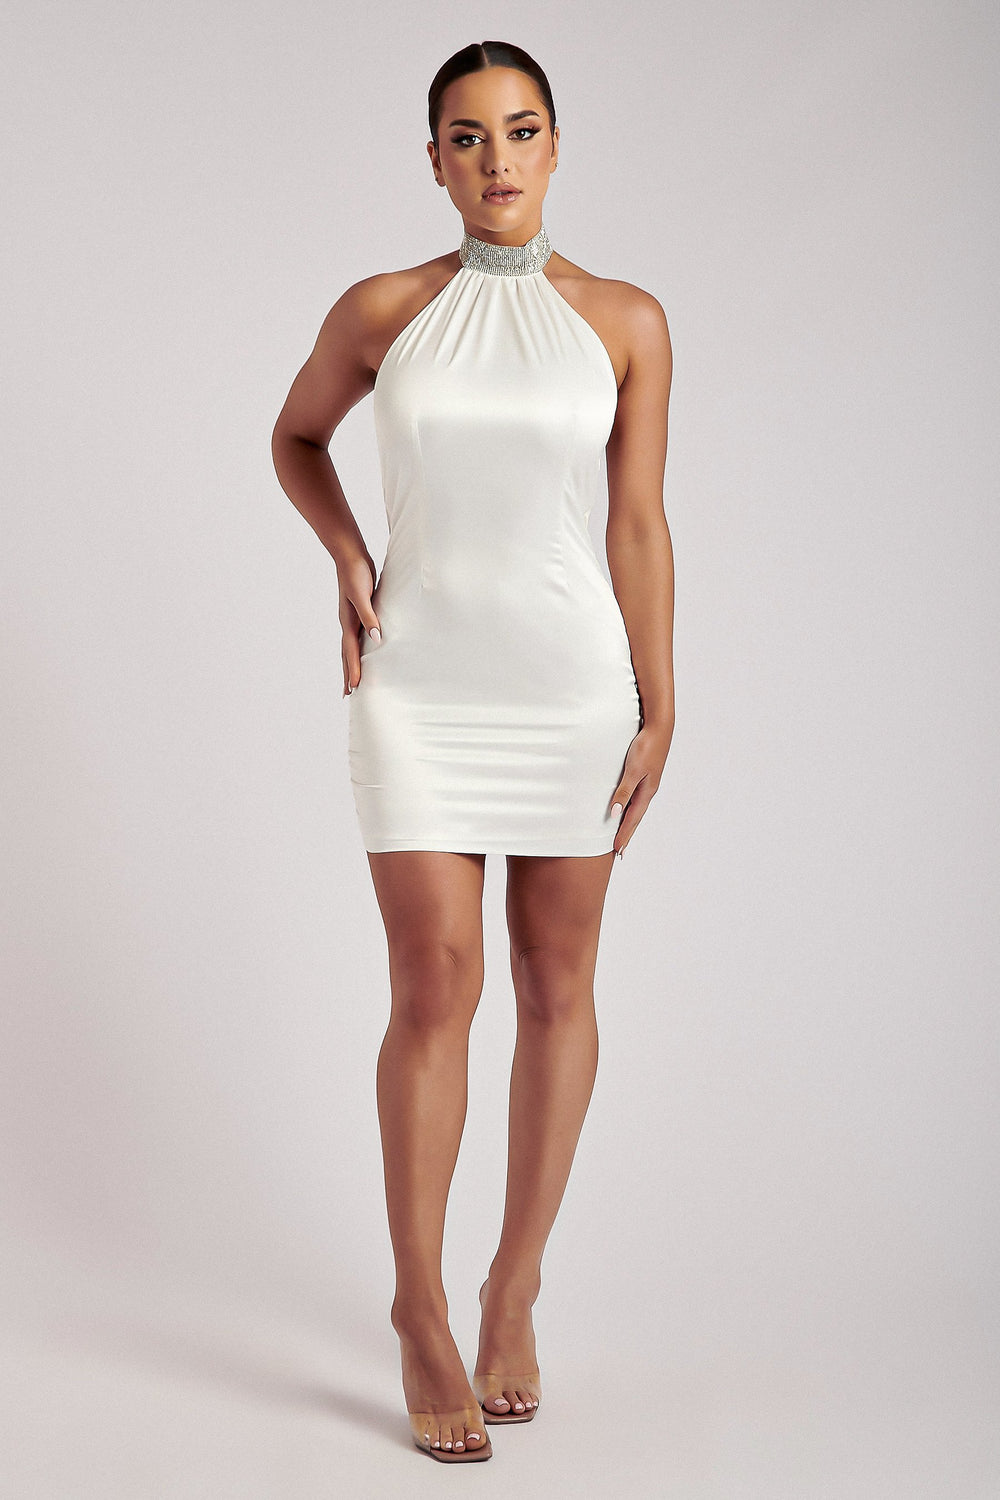 Anissa Diamante Collar Cowl Back Mini Dress - White